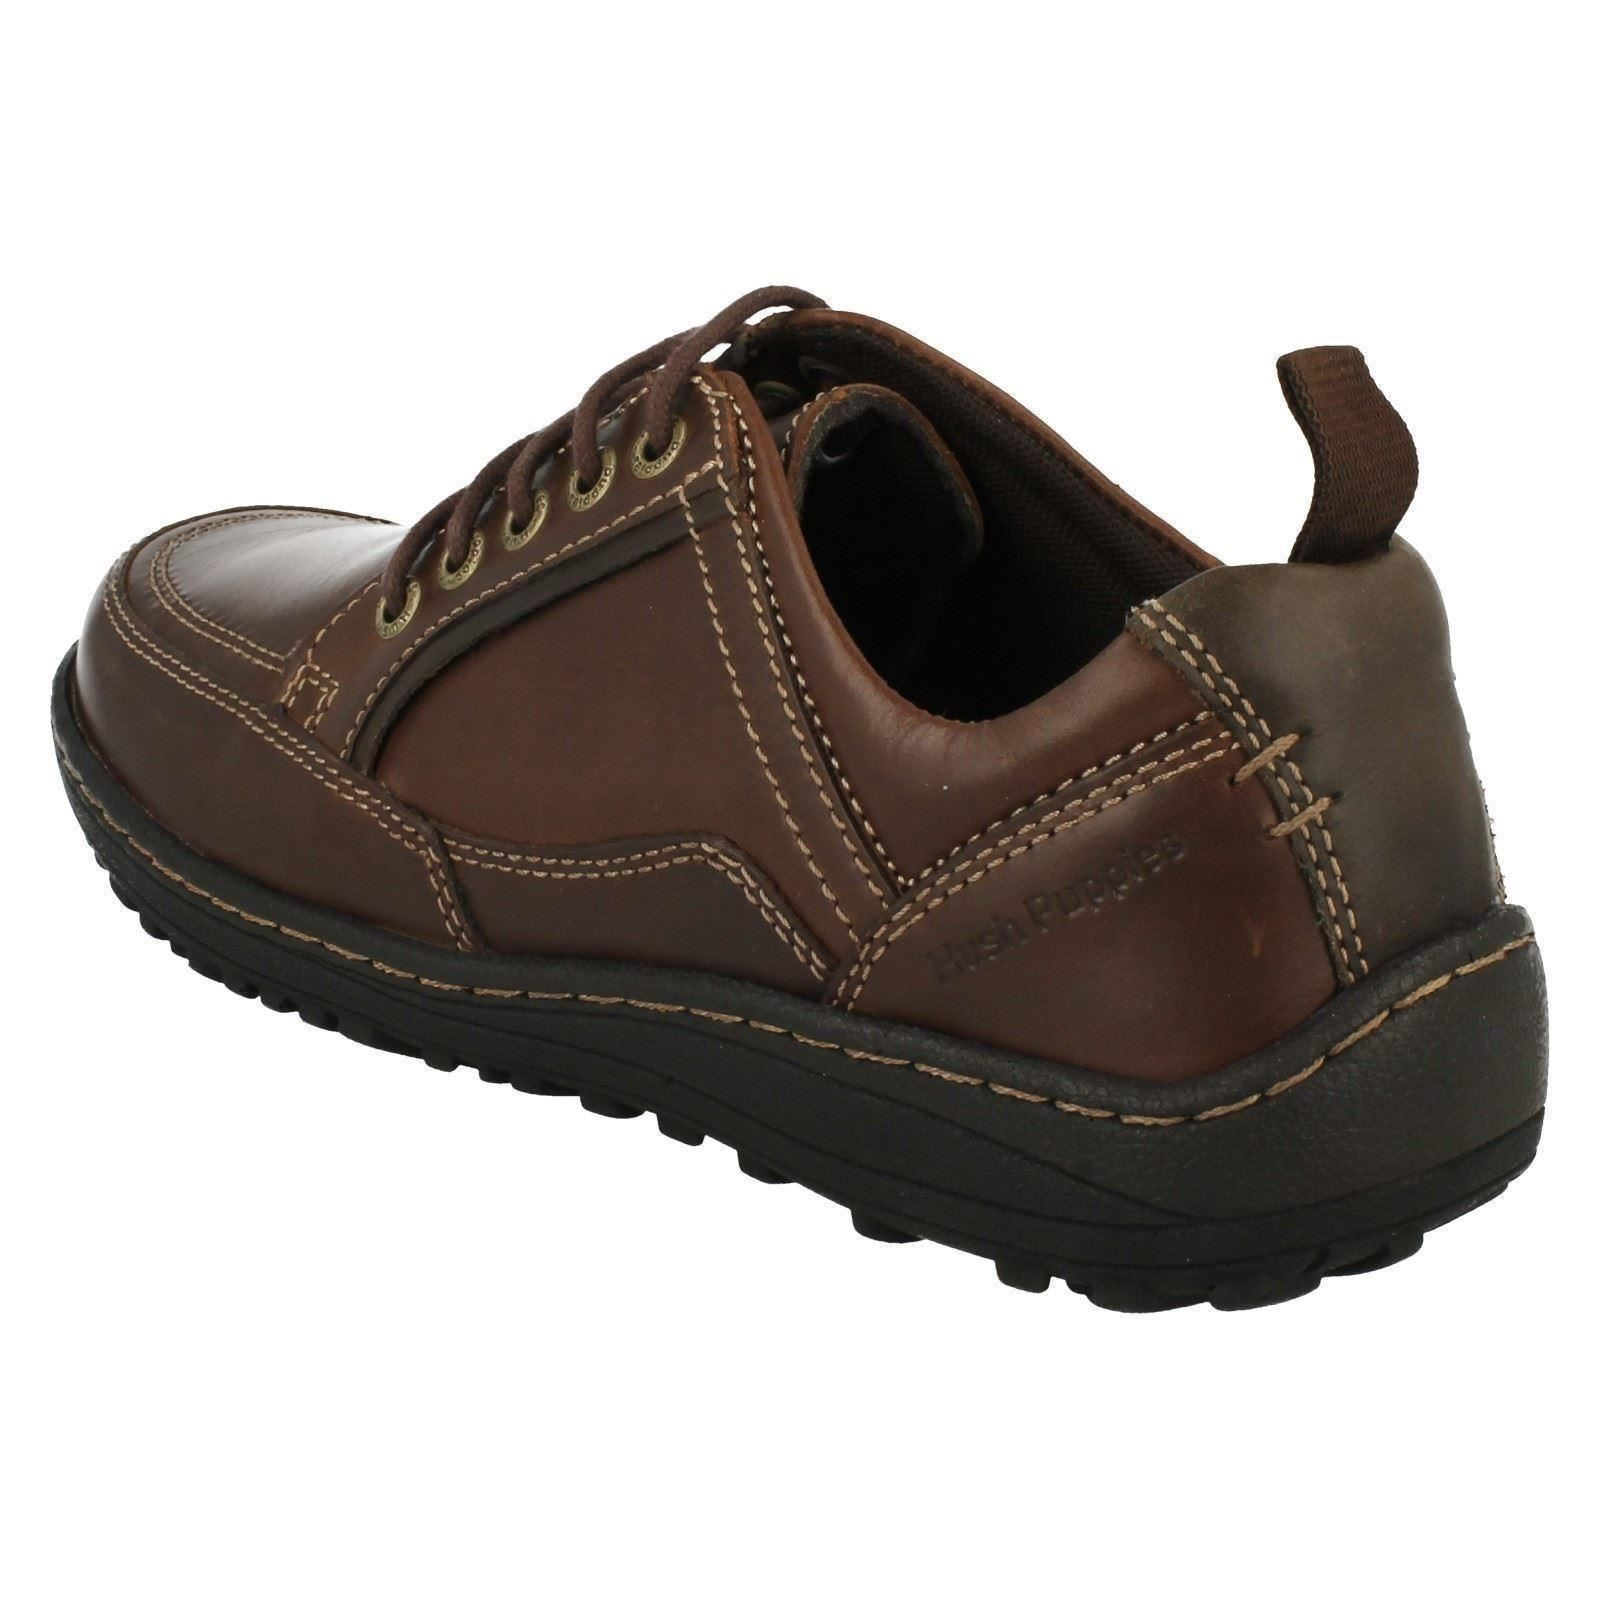 mens hush puppies rounded toe lace up shoes belfast